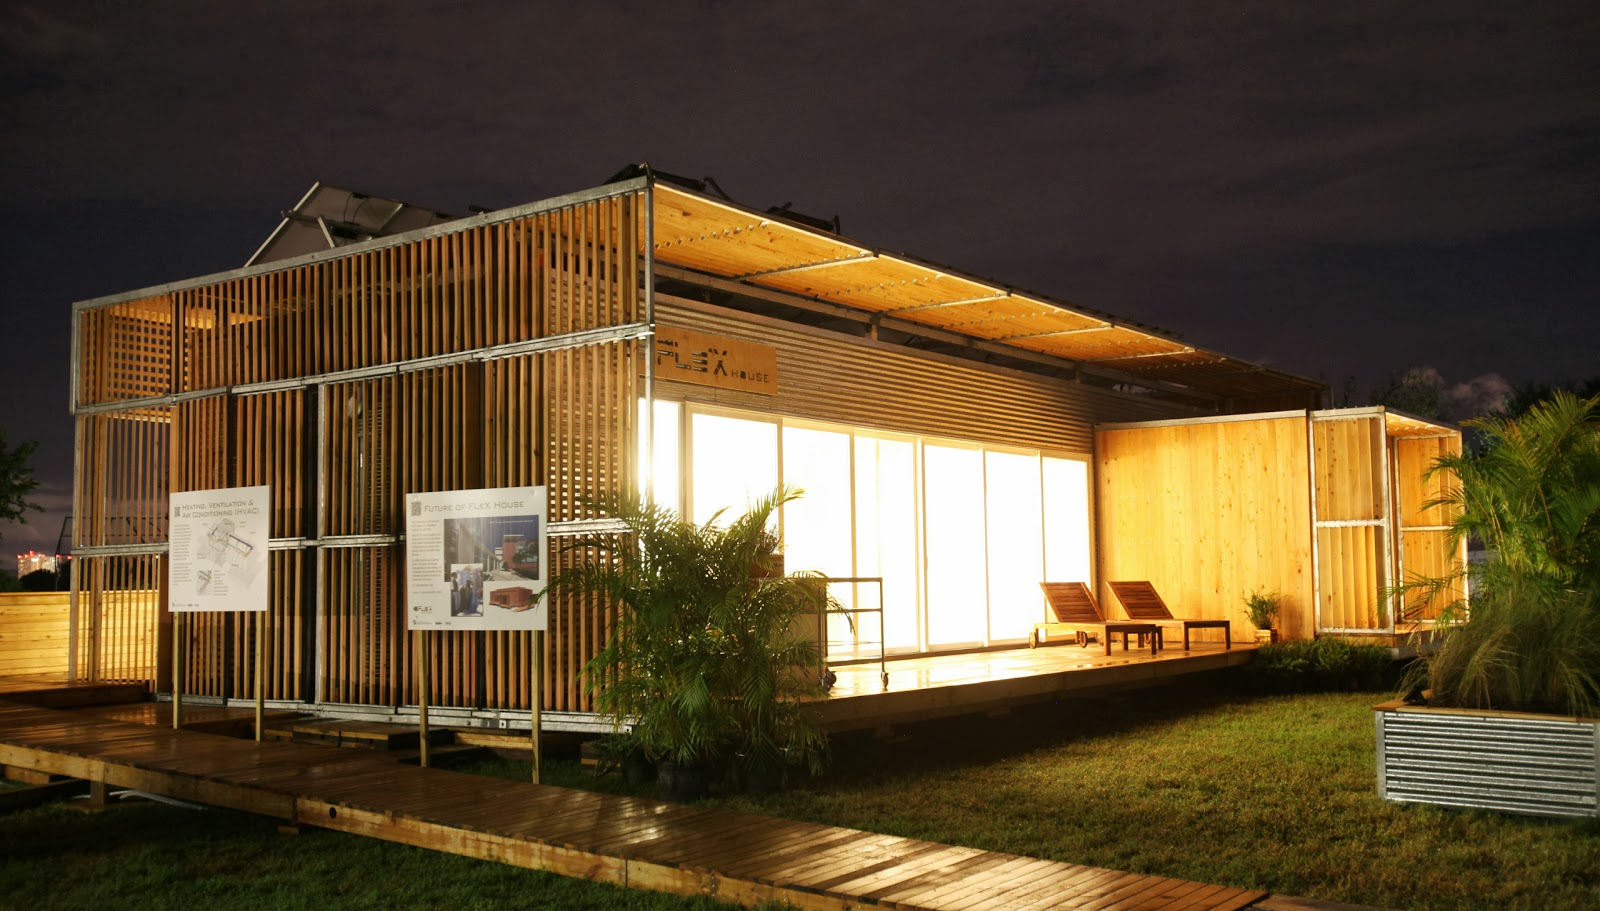 10 examples of large shipping container homes container - Pictures of container homes ...